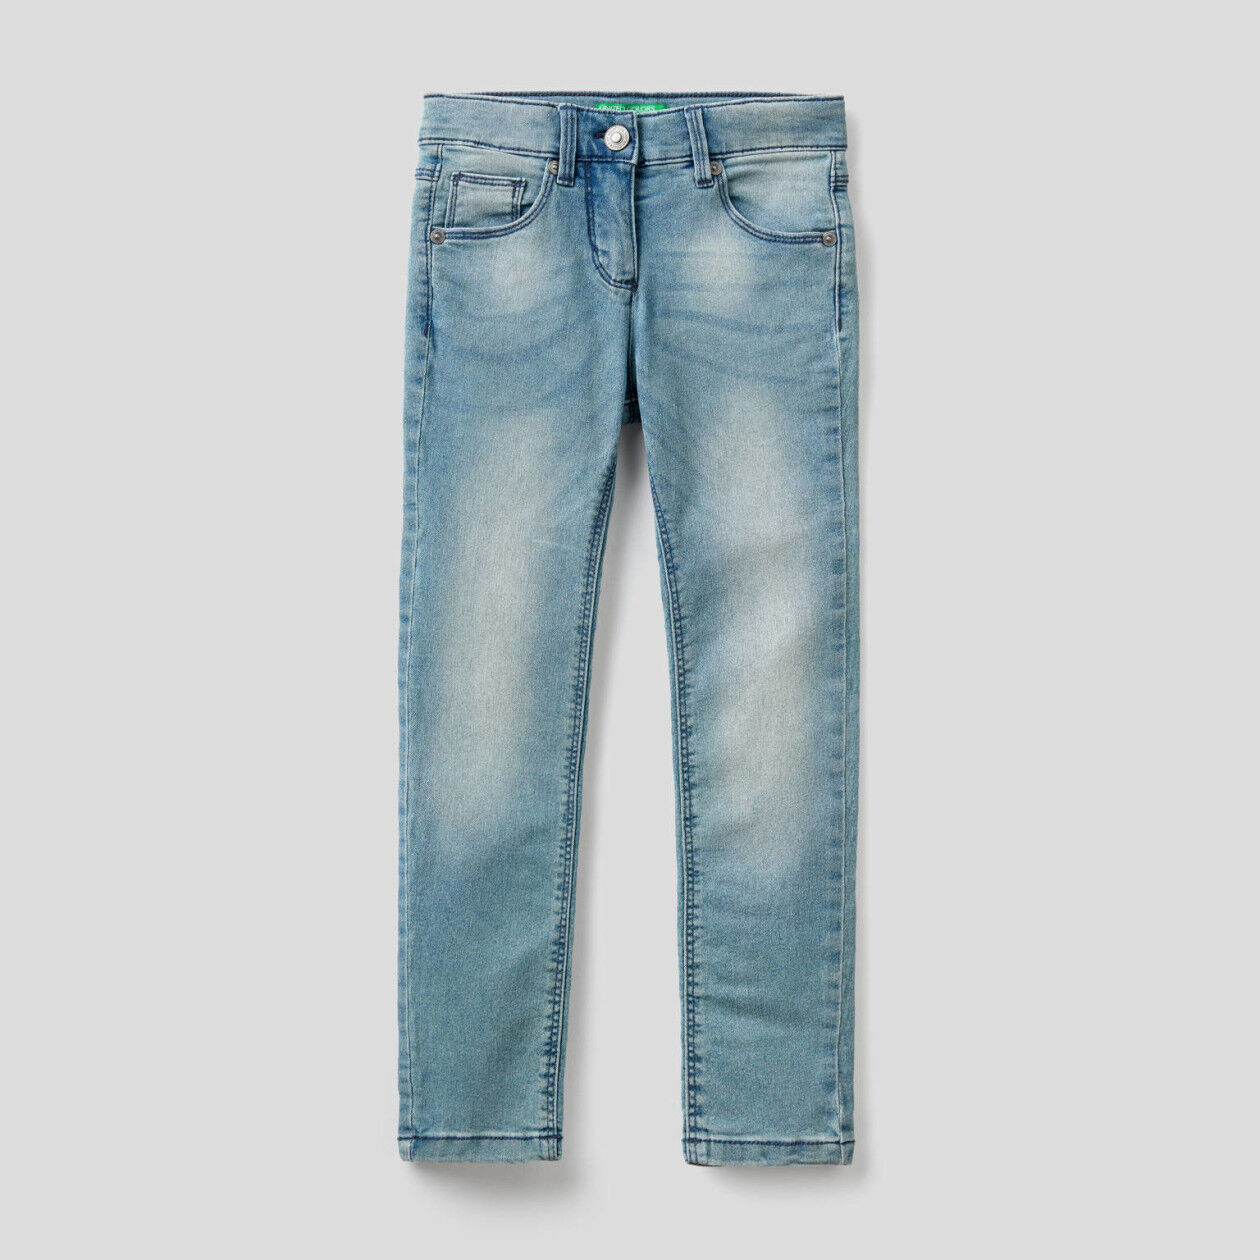 Jeans à taille basse coupe skinny